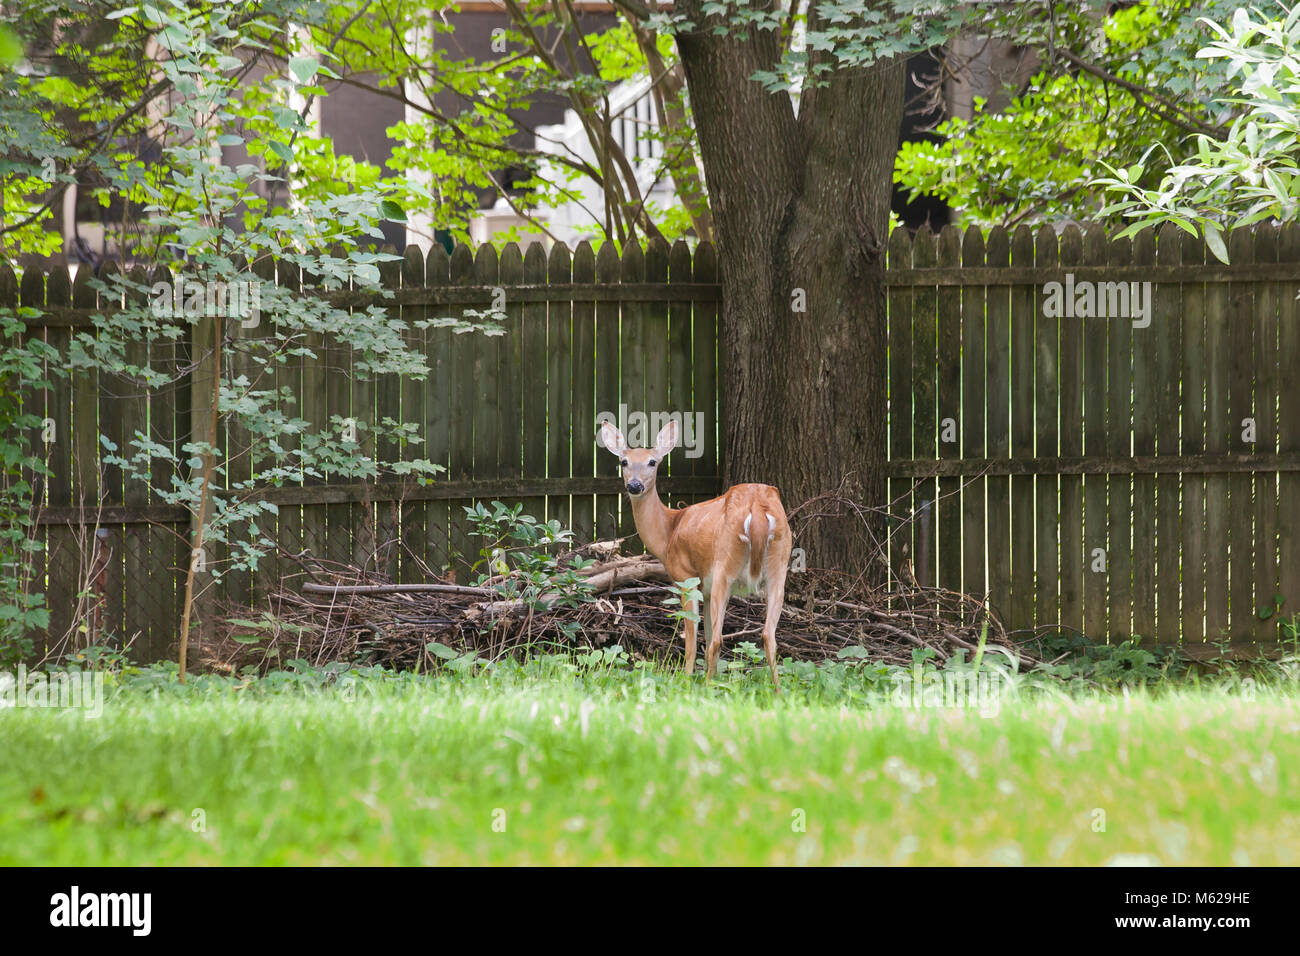 White-tailed deer (Odocoileus virginianus) near house fence - Virginia USA - Stock Image